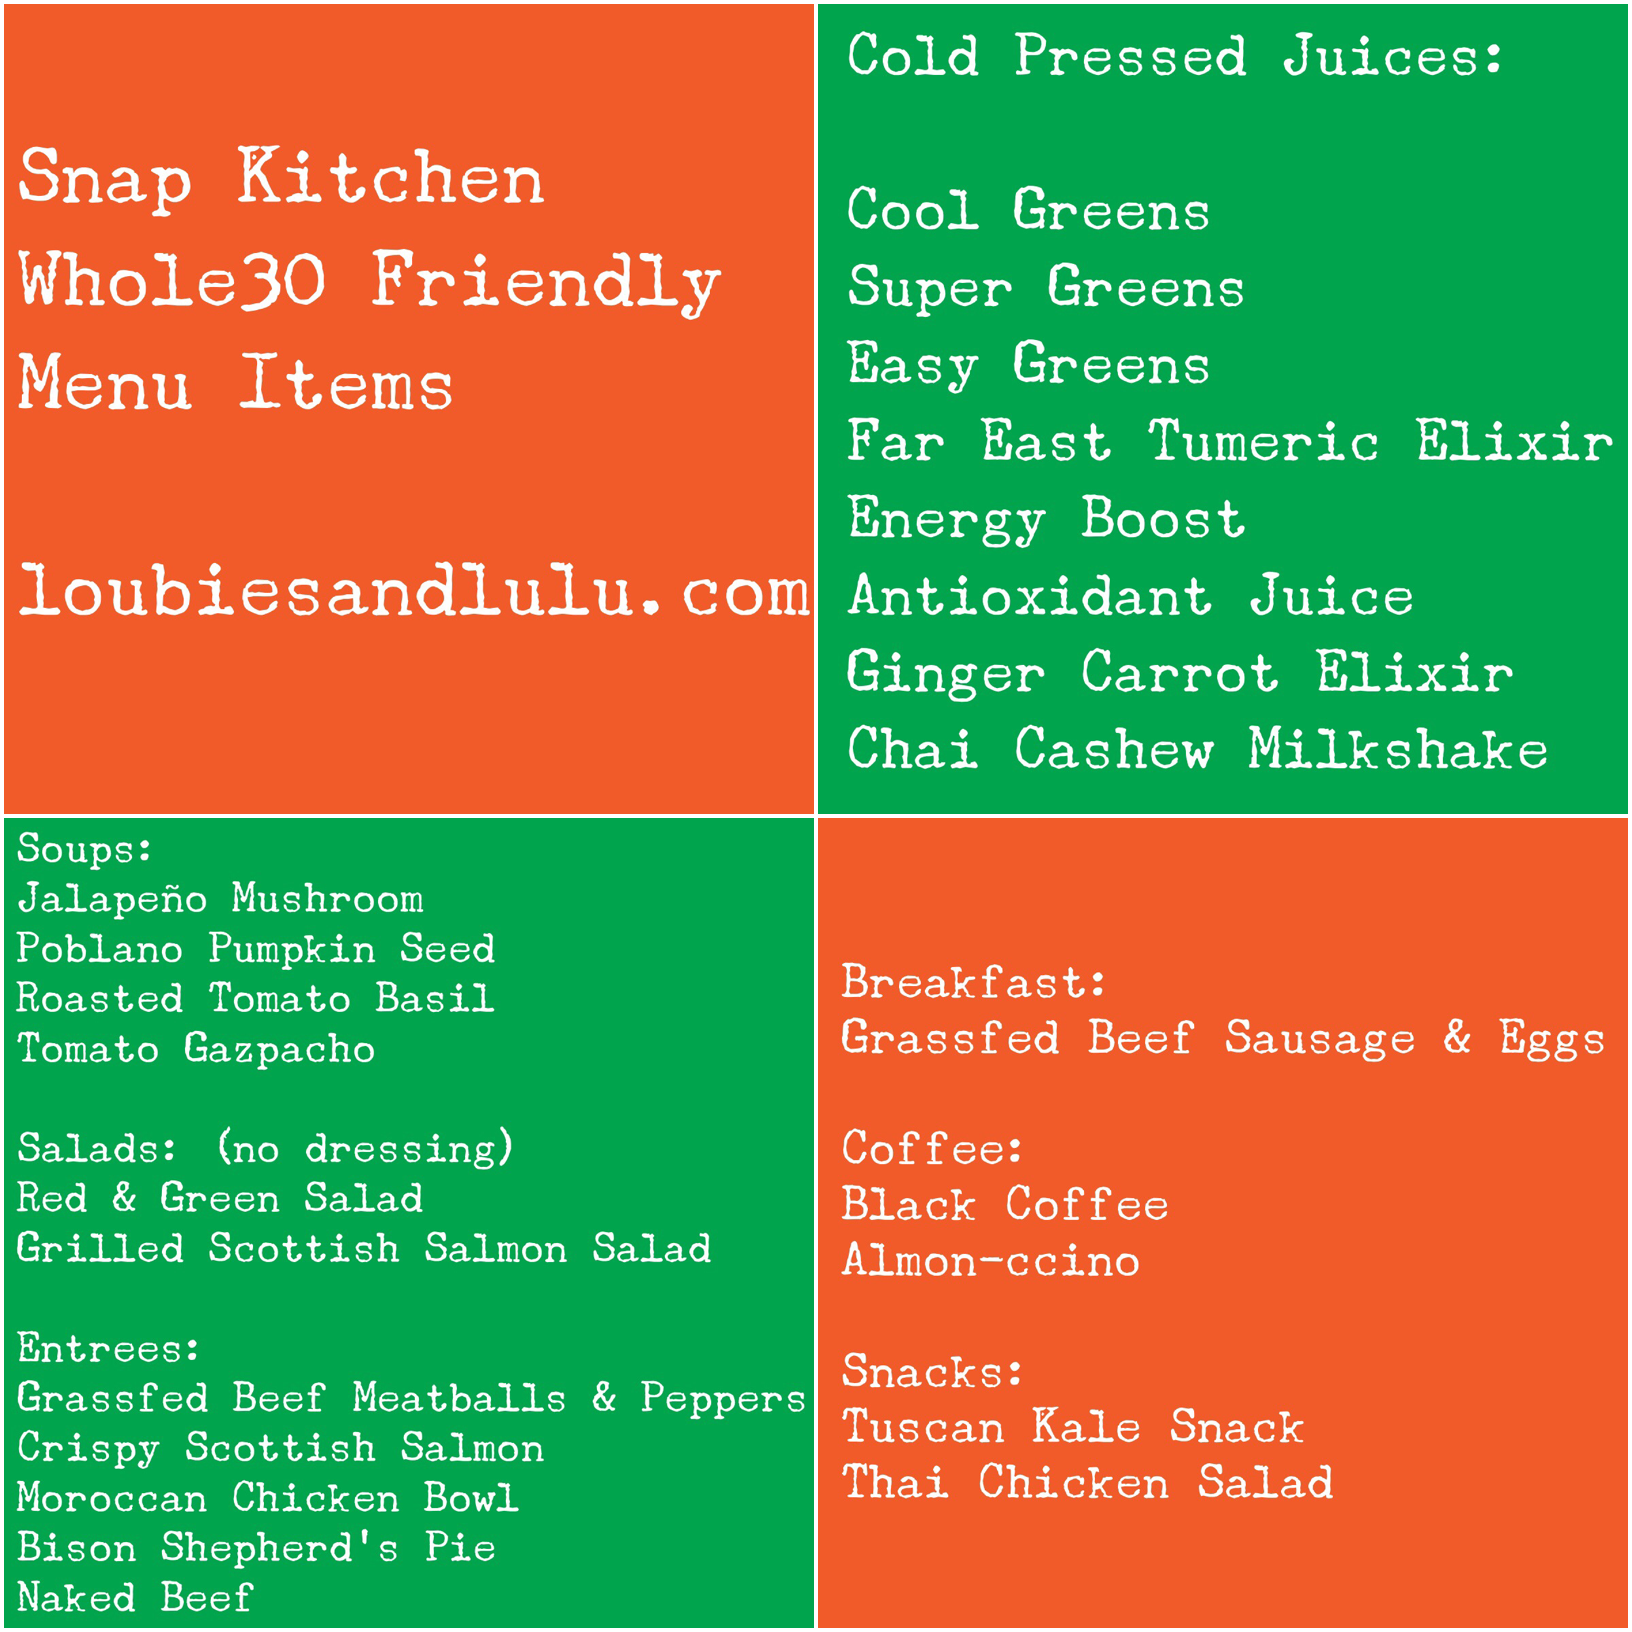 Exceptional Snap Kitchen Whole30 Friendly Items Nice Look